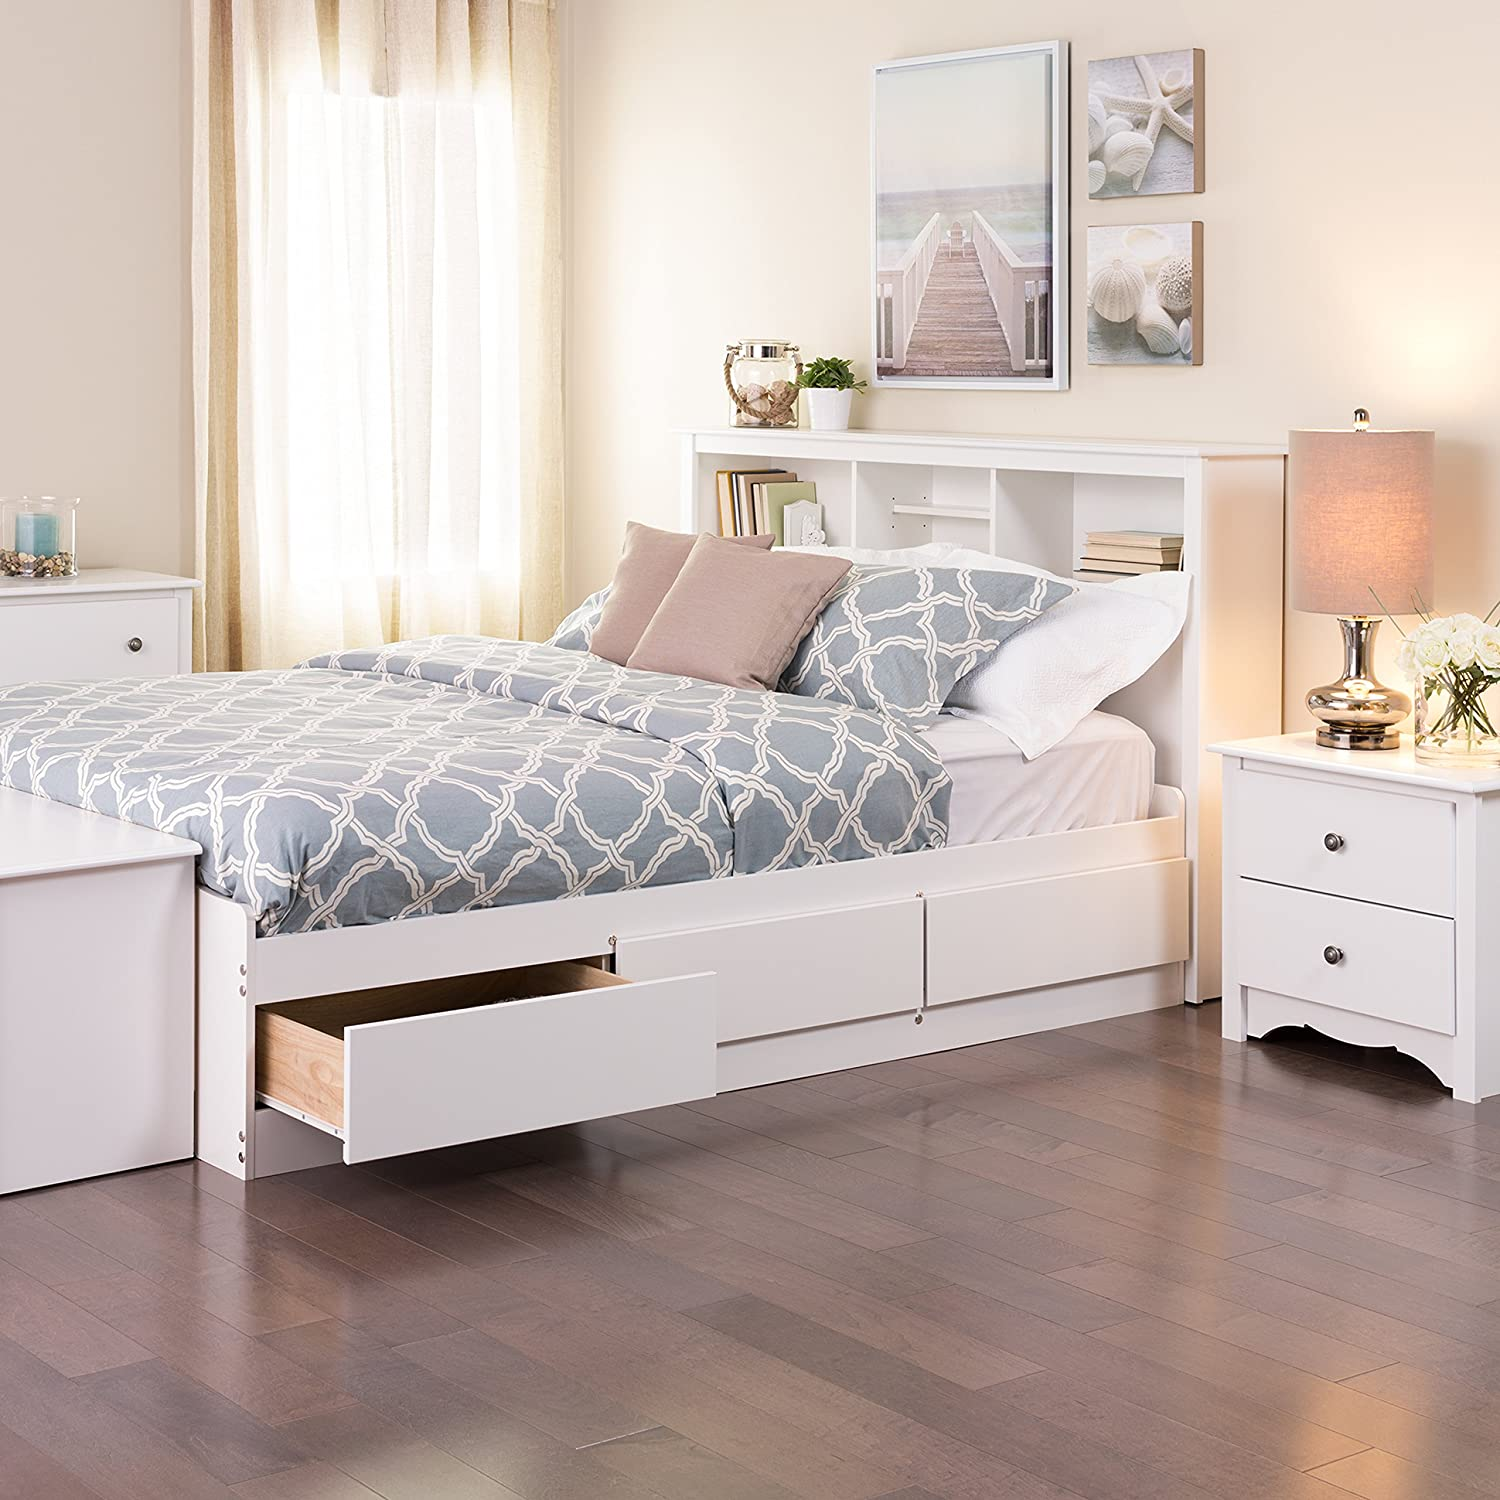 Amazon.com: White Queen Mate's Platform Storage Bed with 6 Drawers: Kitchen  & Dining - Amazon.com: White Queen Mate's Platform Storage Bed With 6 Drawers